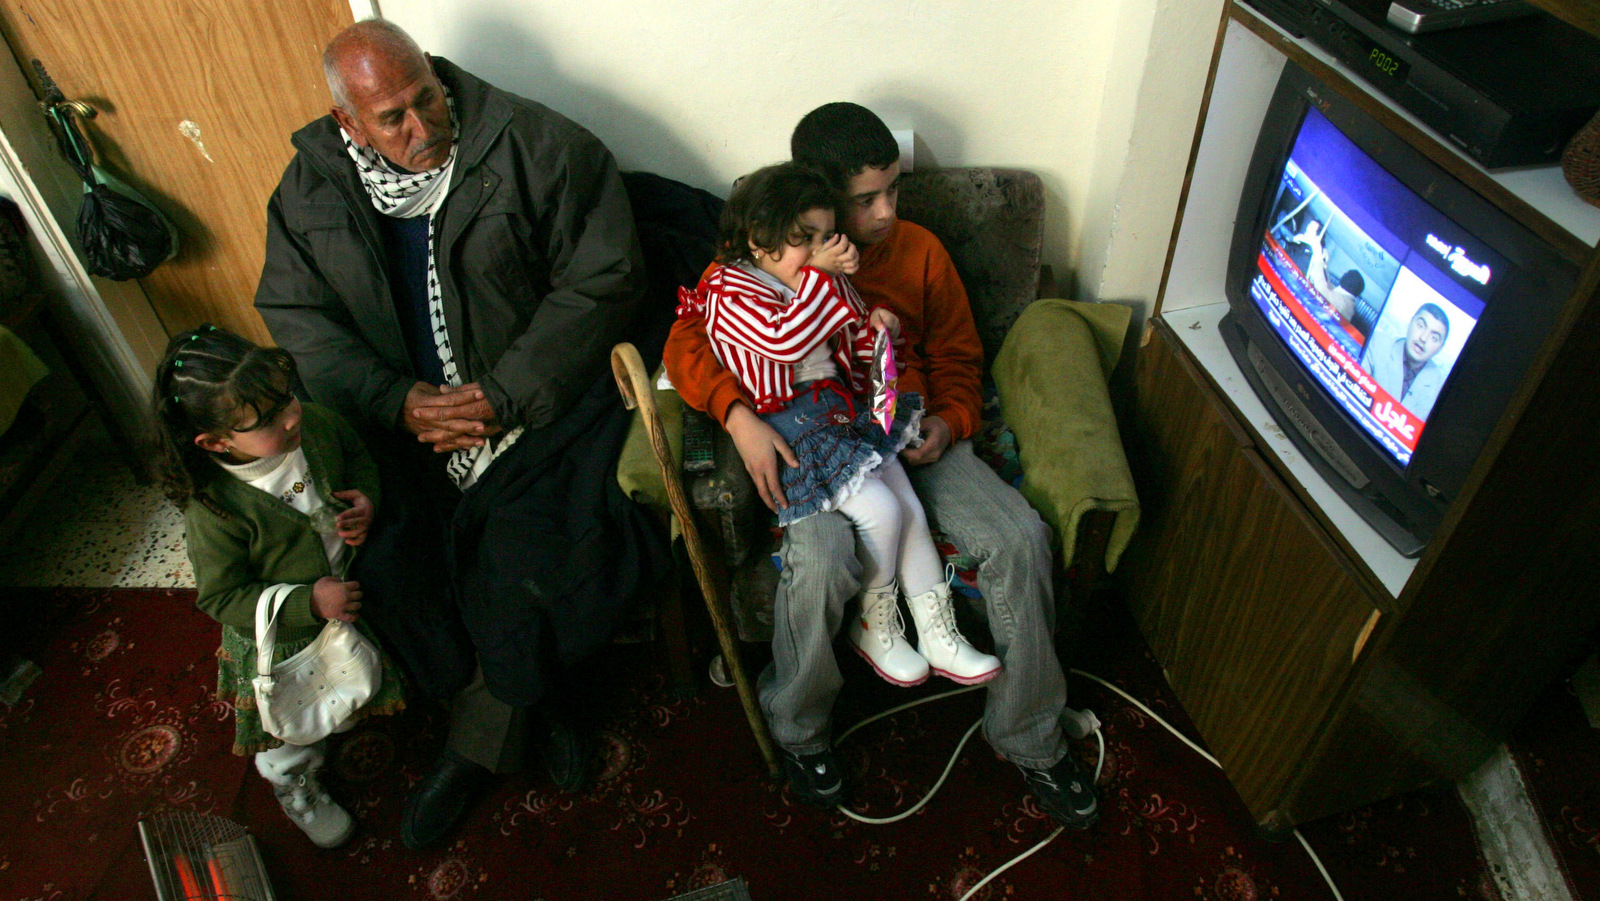 A Palestinian family watches Saudi state-owned Al-Arabiya TV transmitting a video of the execution of Saddam Hussein, in the West Bank town of Ramallah, Dec. 30, 2006. (AP/Muhammed Muheisen)